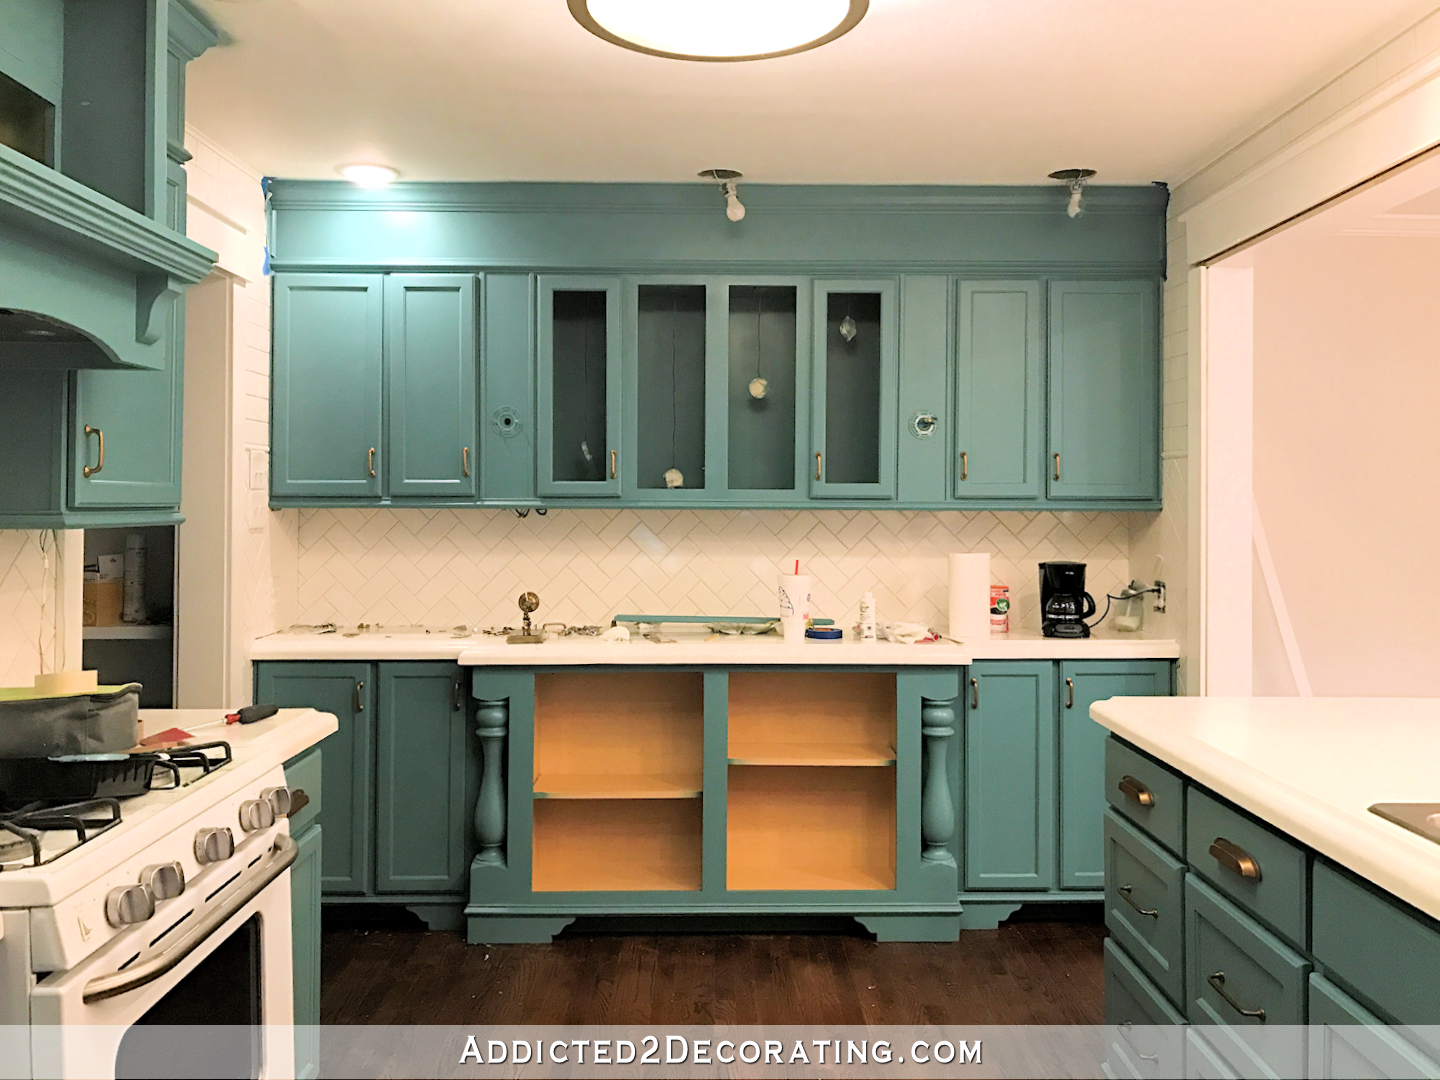 My Freshly Painted Teal Kitchen Cabinets Teal Kitchen Cabinets Teal Kitchen Unfinished Kitchen Cabinets